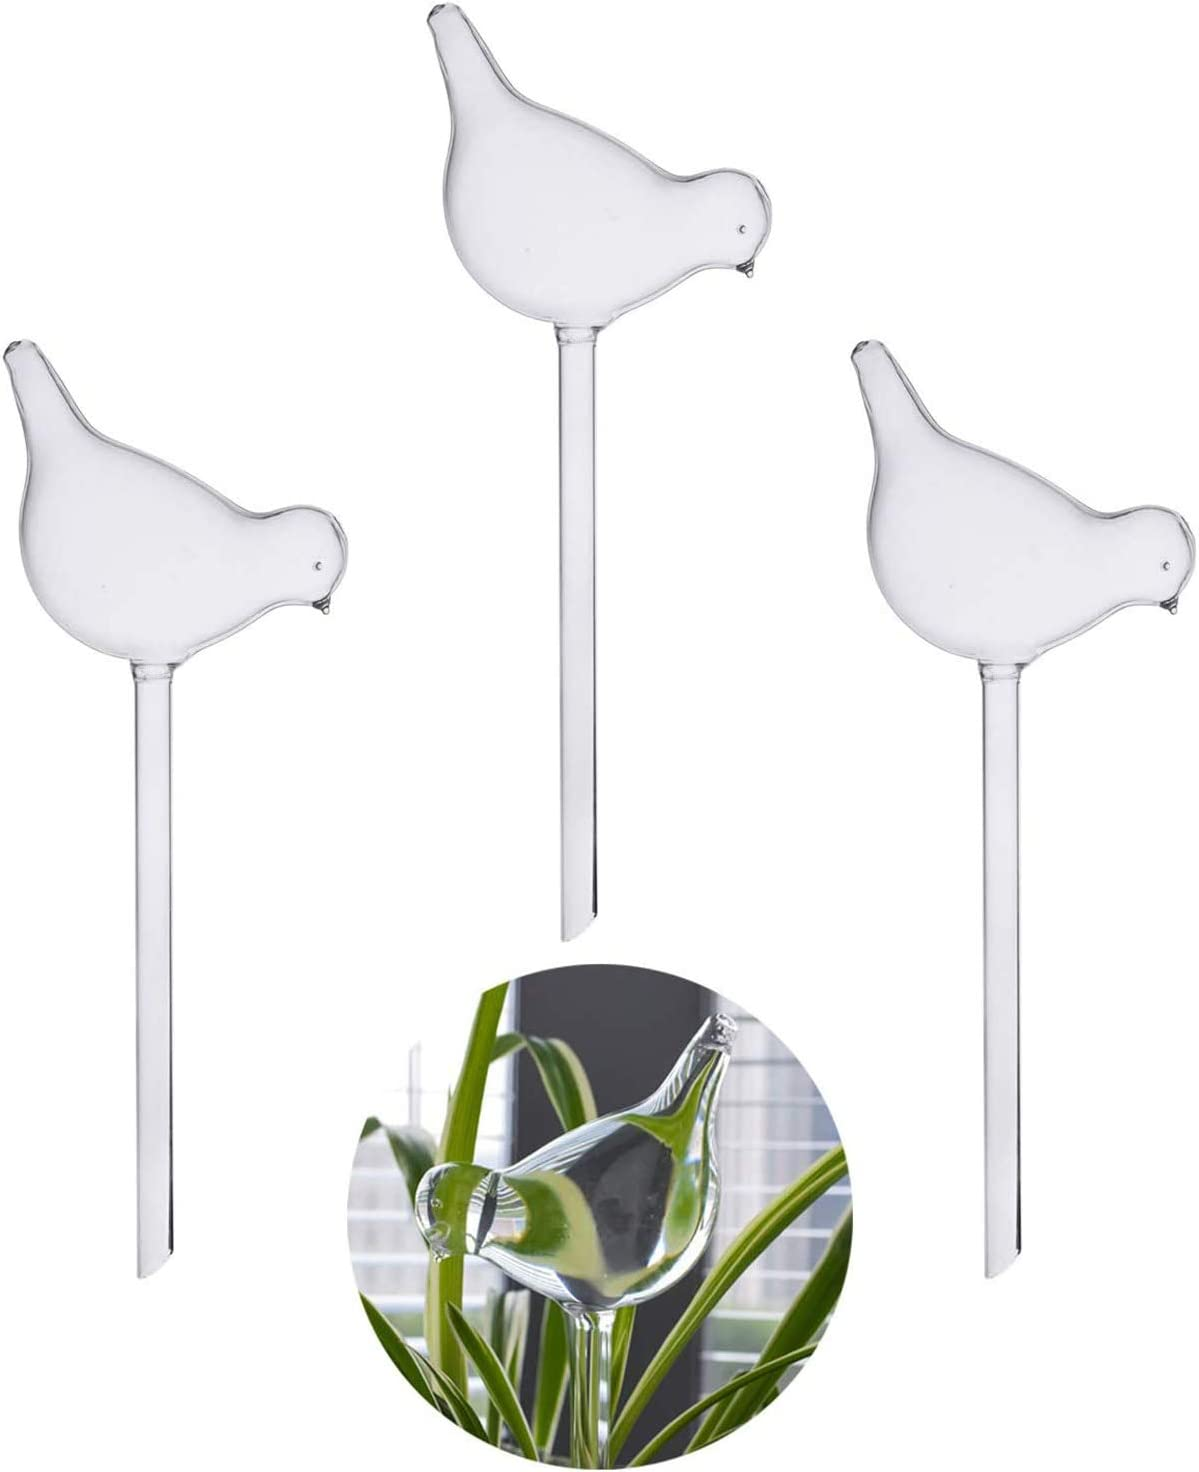 wyxhkj Clearance Sale For Garden Plant Watering Device Indoor Automatic Cute Birds Snail Swan Glass Clear